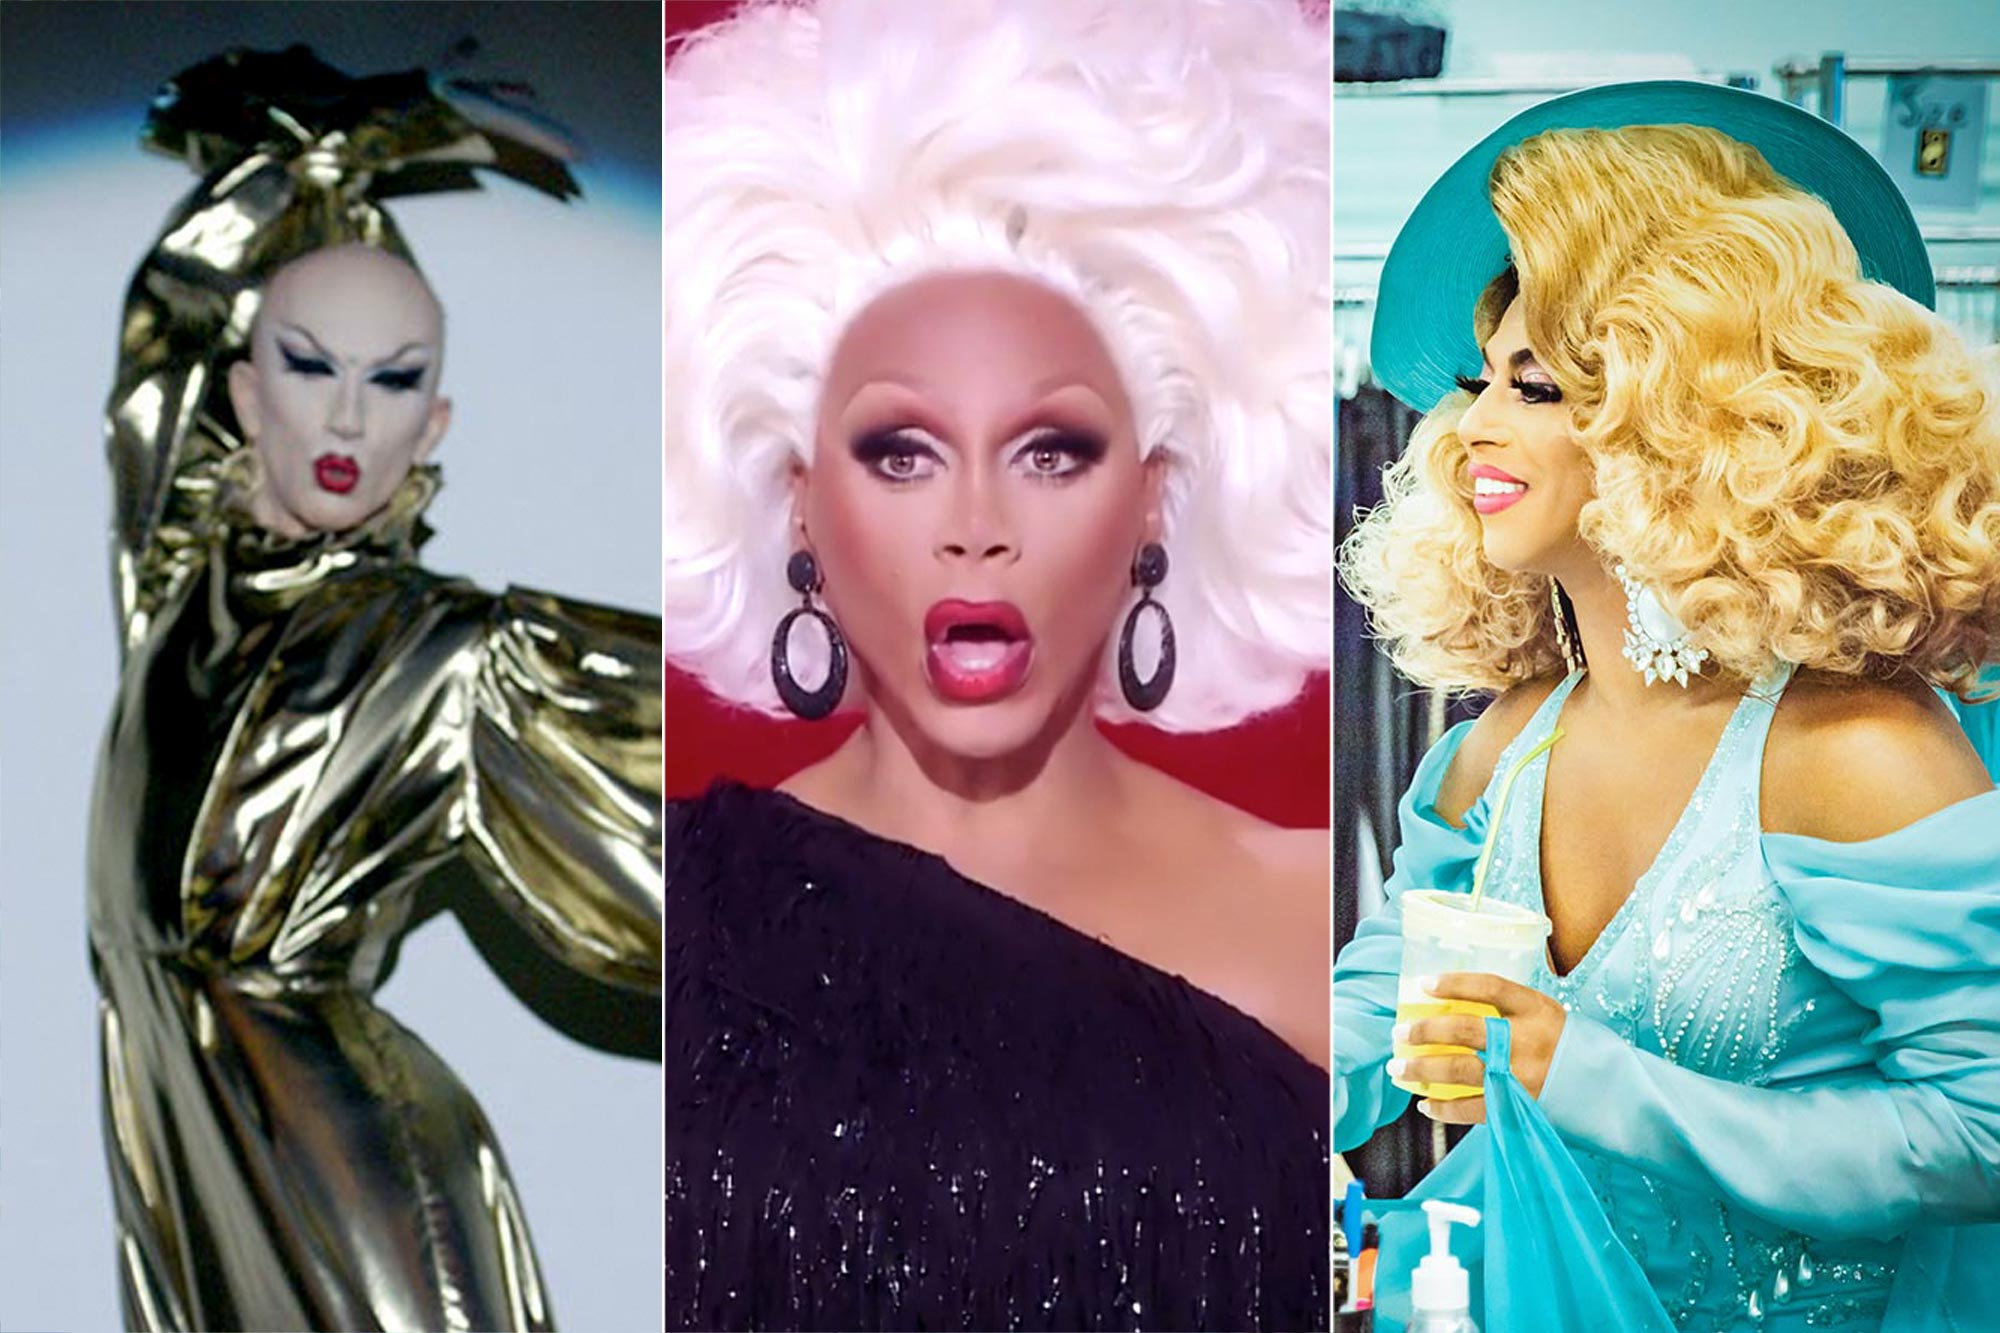 Sasha Velour's NightGowns, RuPaul's Drag Race, We're Here